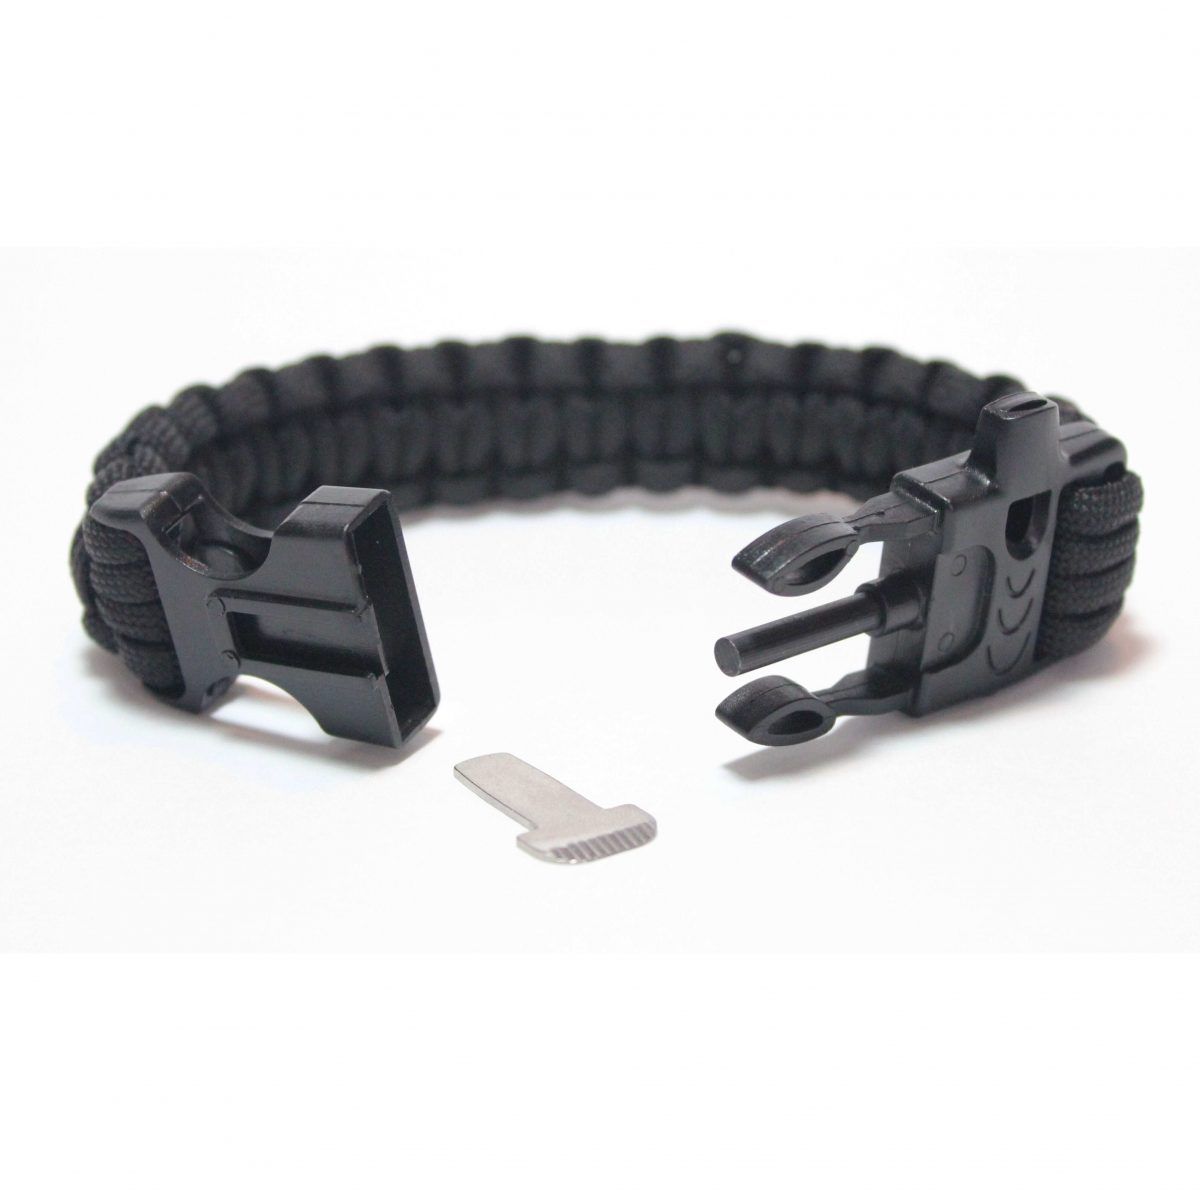 Paracord Survival Bracelet with Fire Starter and Whistle Built In - 9 Inch Length-456